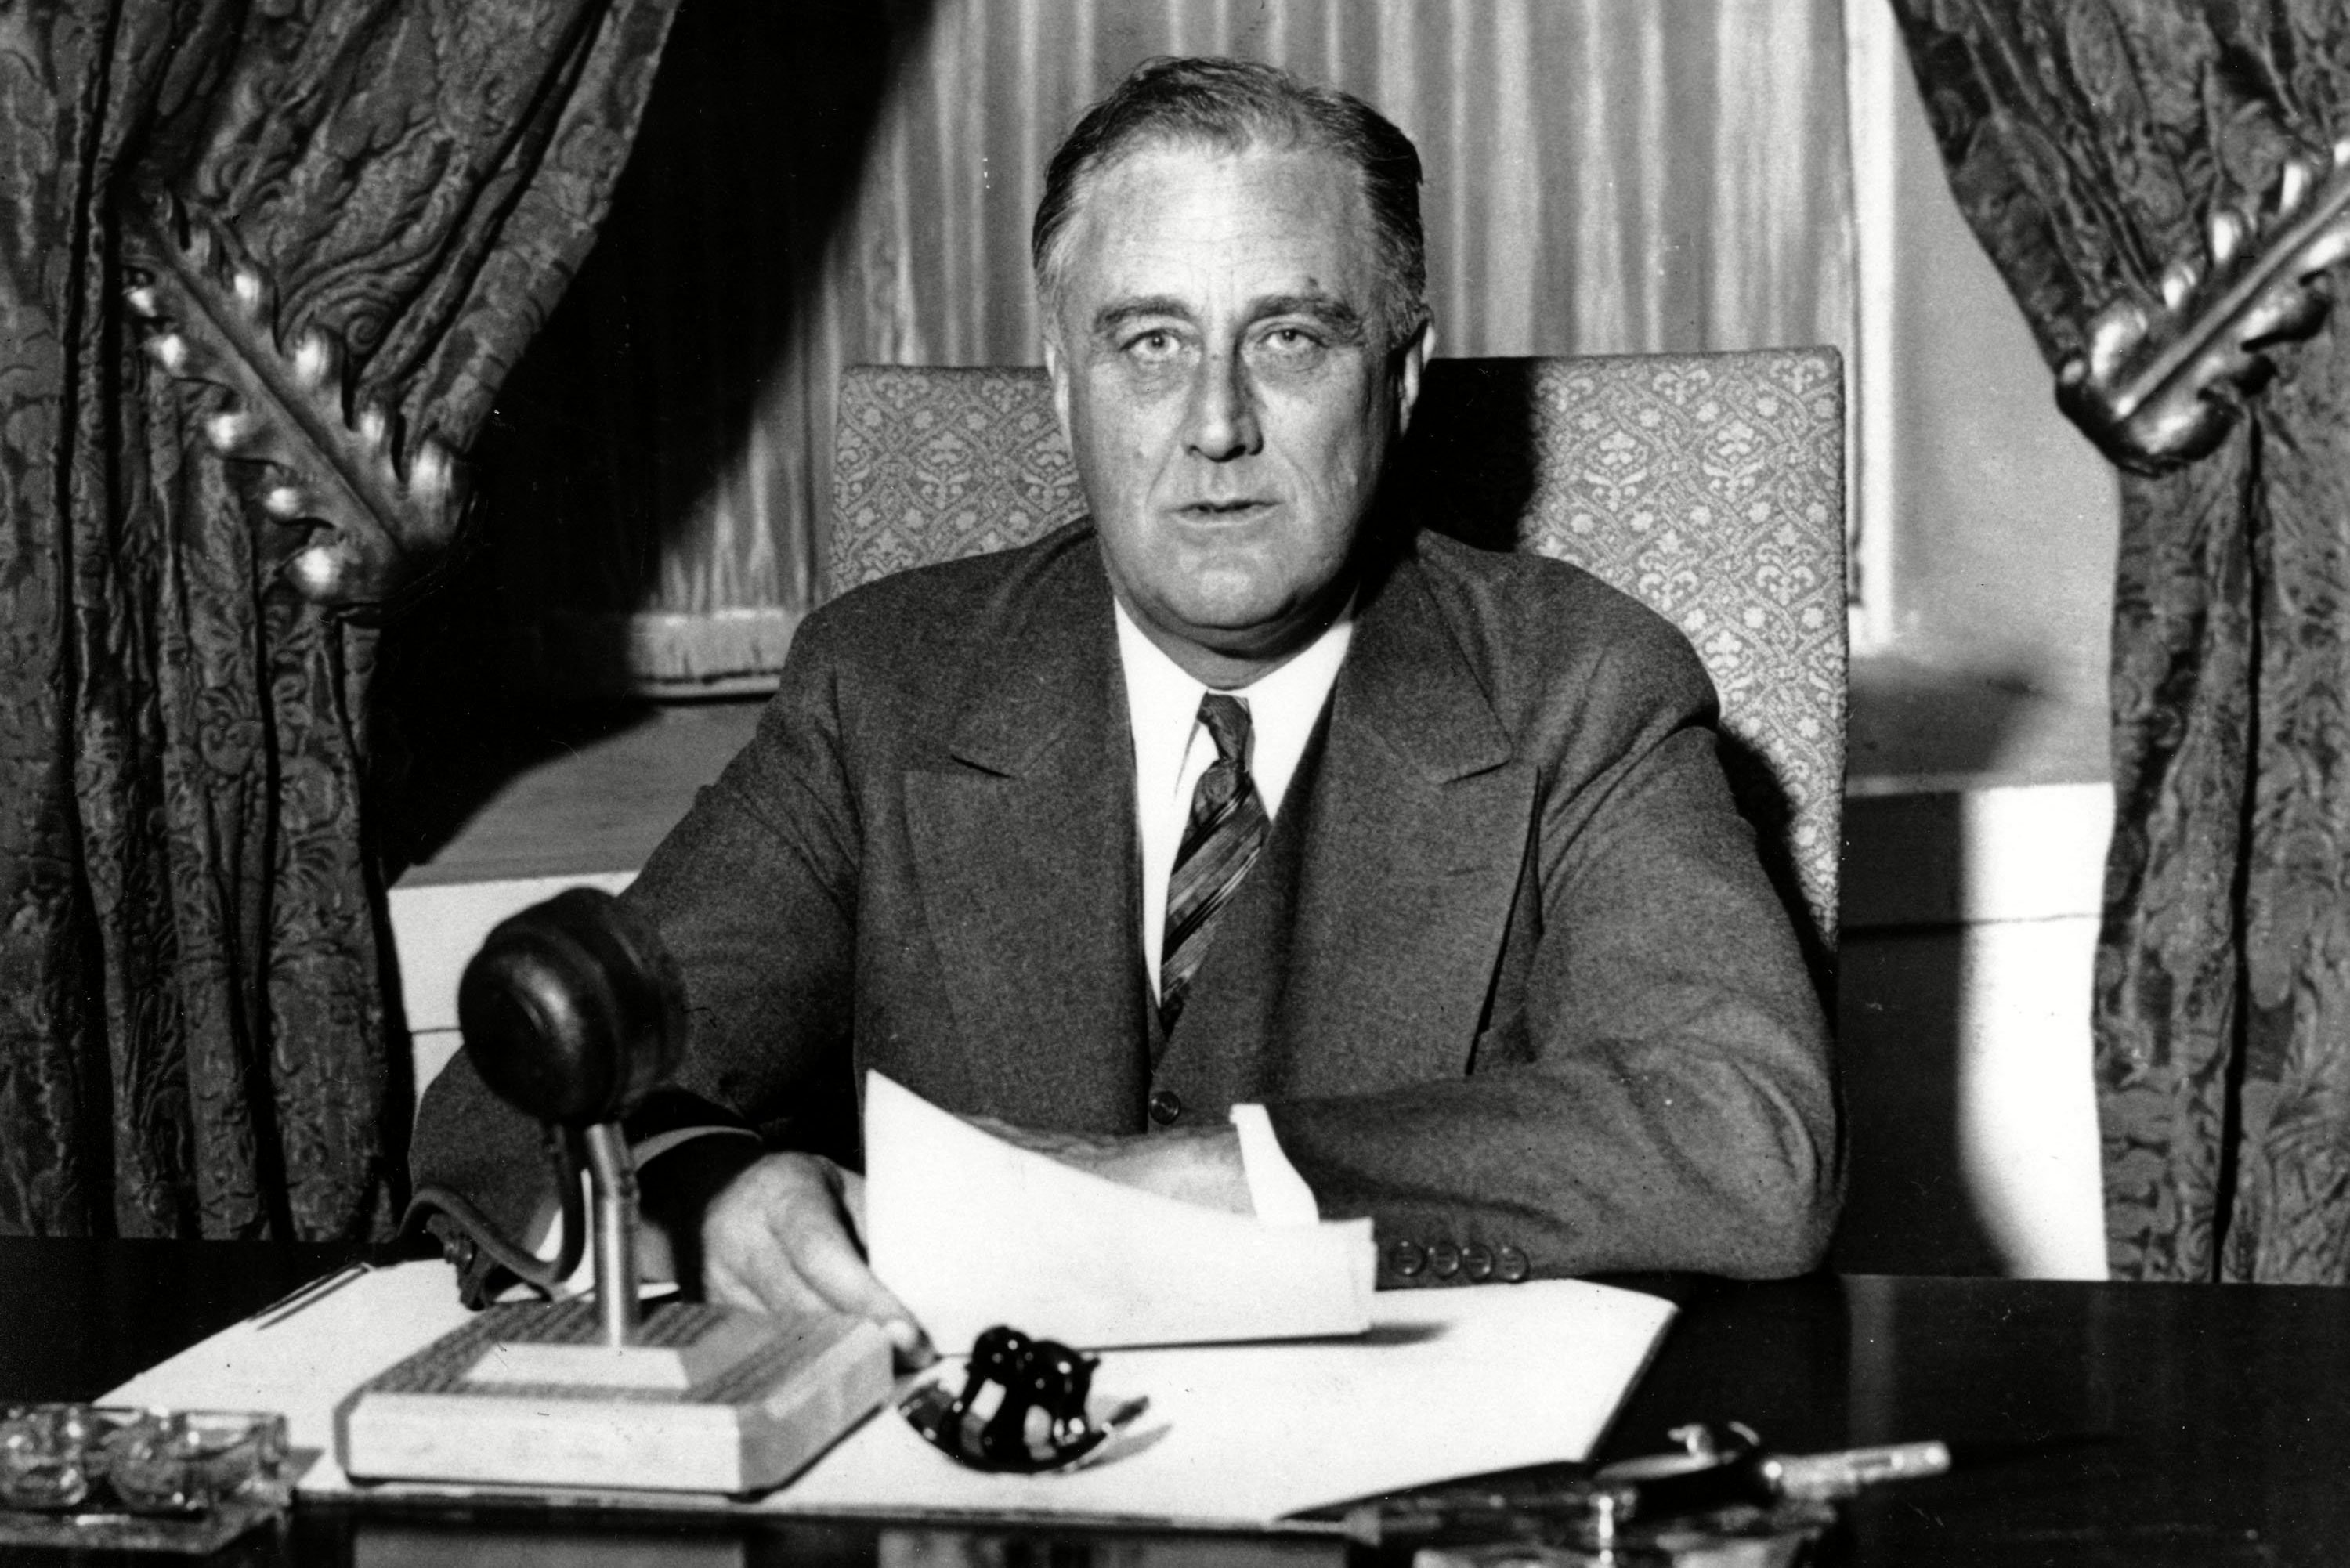 Mandatory Credit: Photo by AP/Shutterstock (7397466a) This photo was taken moments before U.S. President Franklin D. Roosevelt began his historic fireside chat to the American people on . He spoke to the nation on radio from the White House in Washington, D.C. Roosevelt explained in simple language the measures he is taking to solidify the nation's shaky banking system. The speech had a resounding success: millions of Americans began making bank deposits once again FDR FIRESIDE CHAT